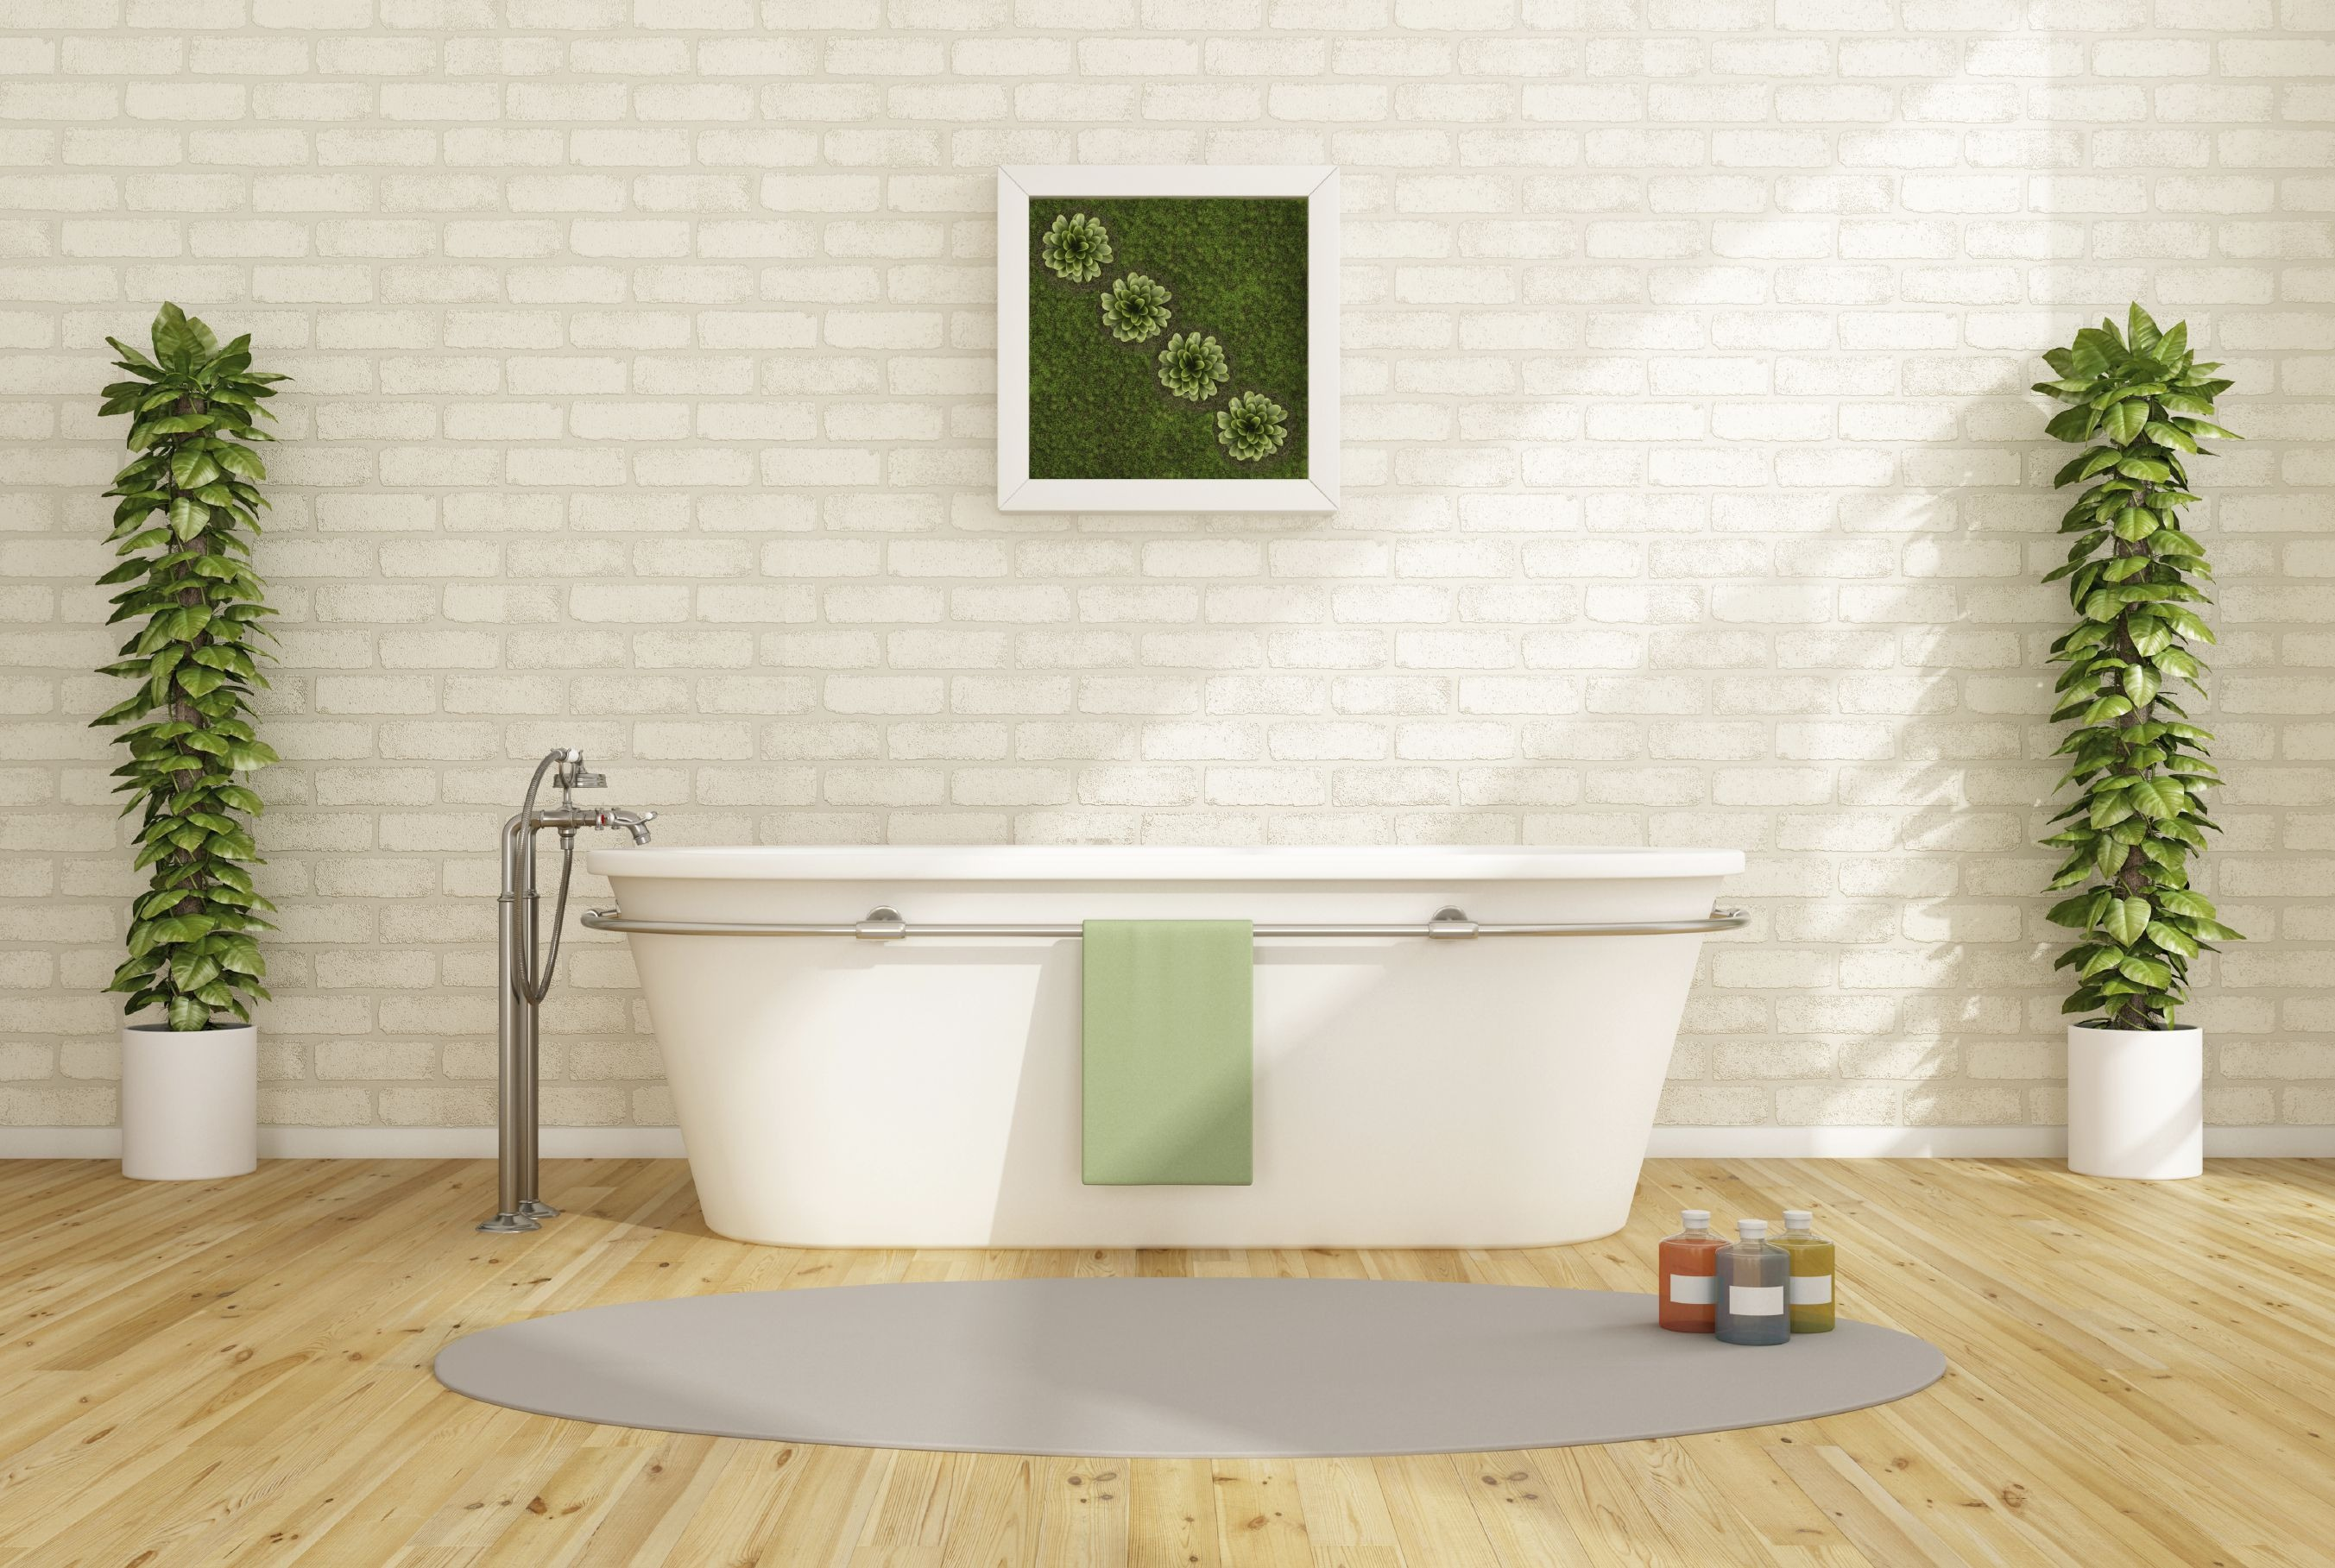 Bathtub - Green